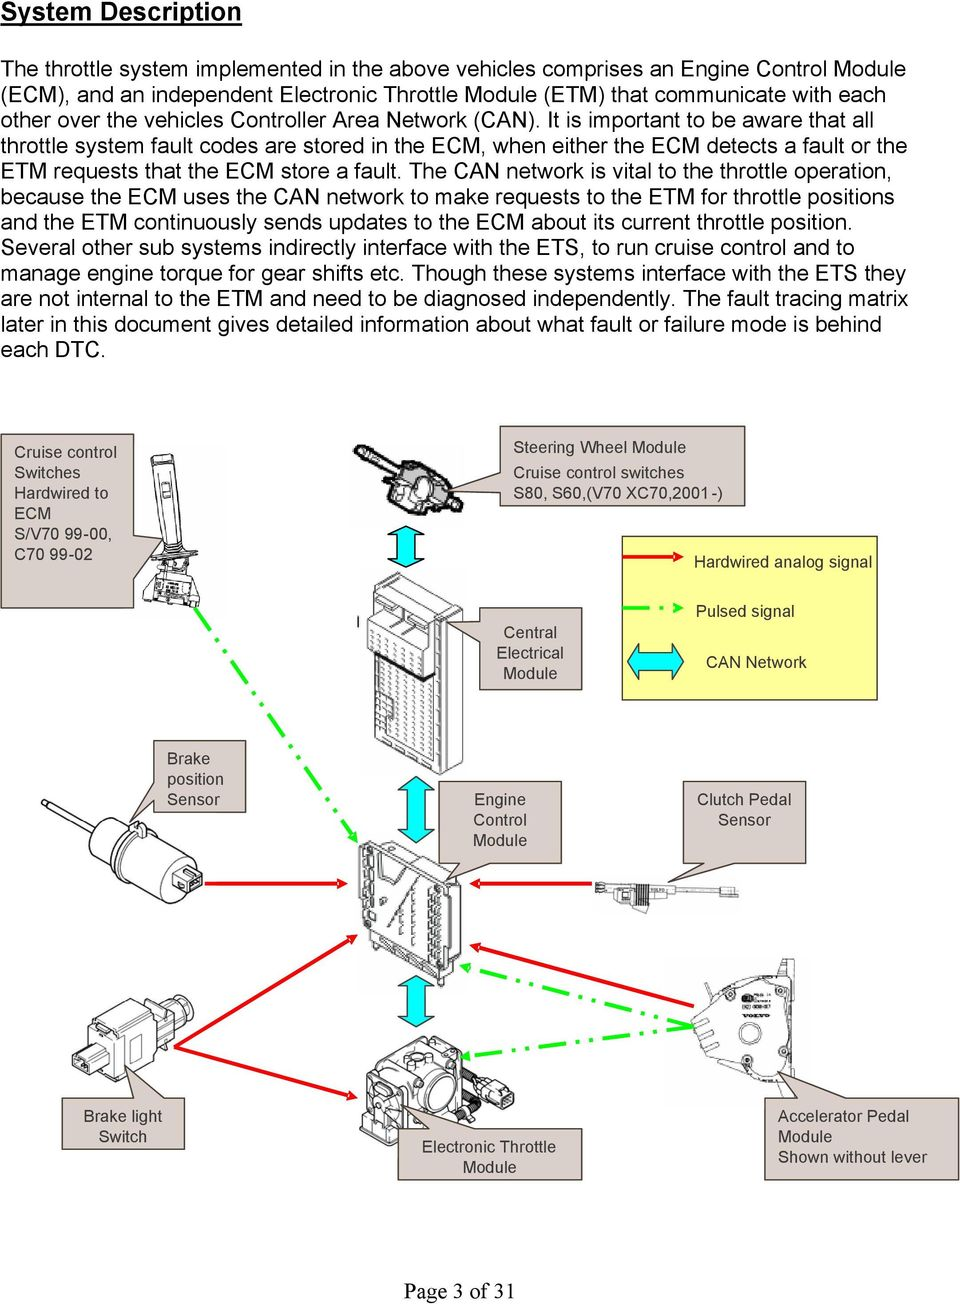 Fixed Right First Time Volvo Technicians Service And Parts Throttle Position Sensor Schematic It Is Important To Be Aware That All System Fault Codes Are Stored In The